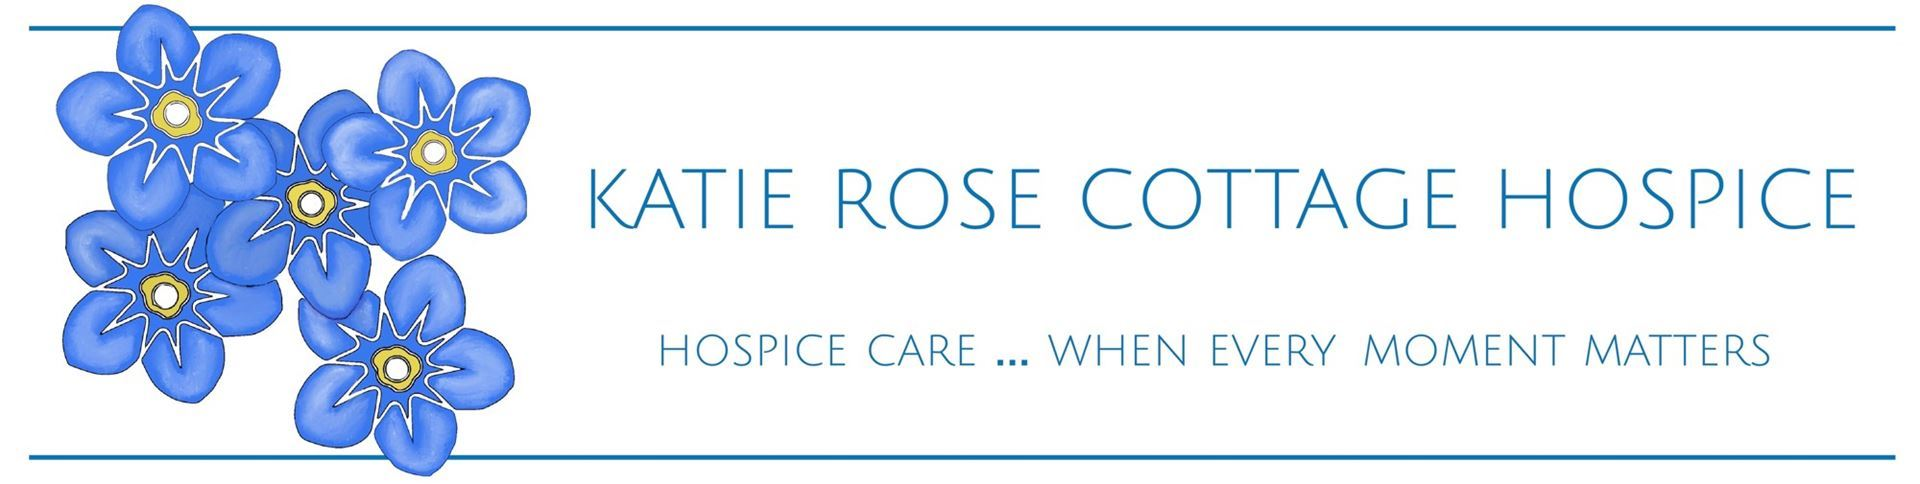 Katie Rose Cottage Hospice